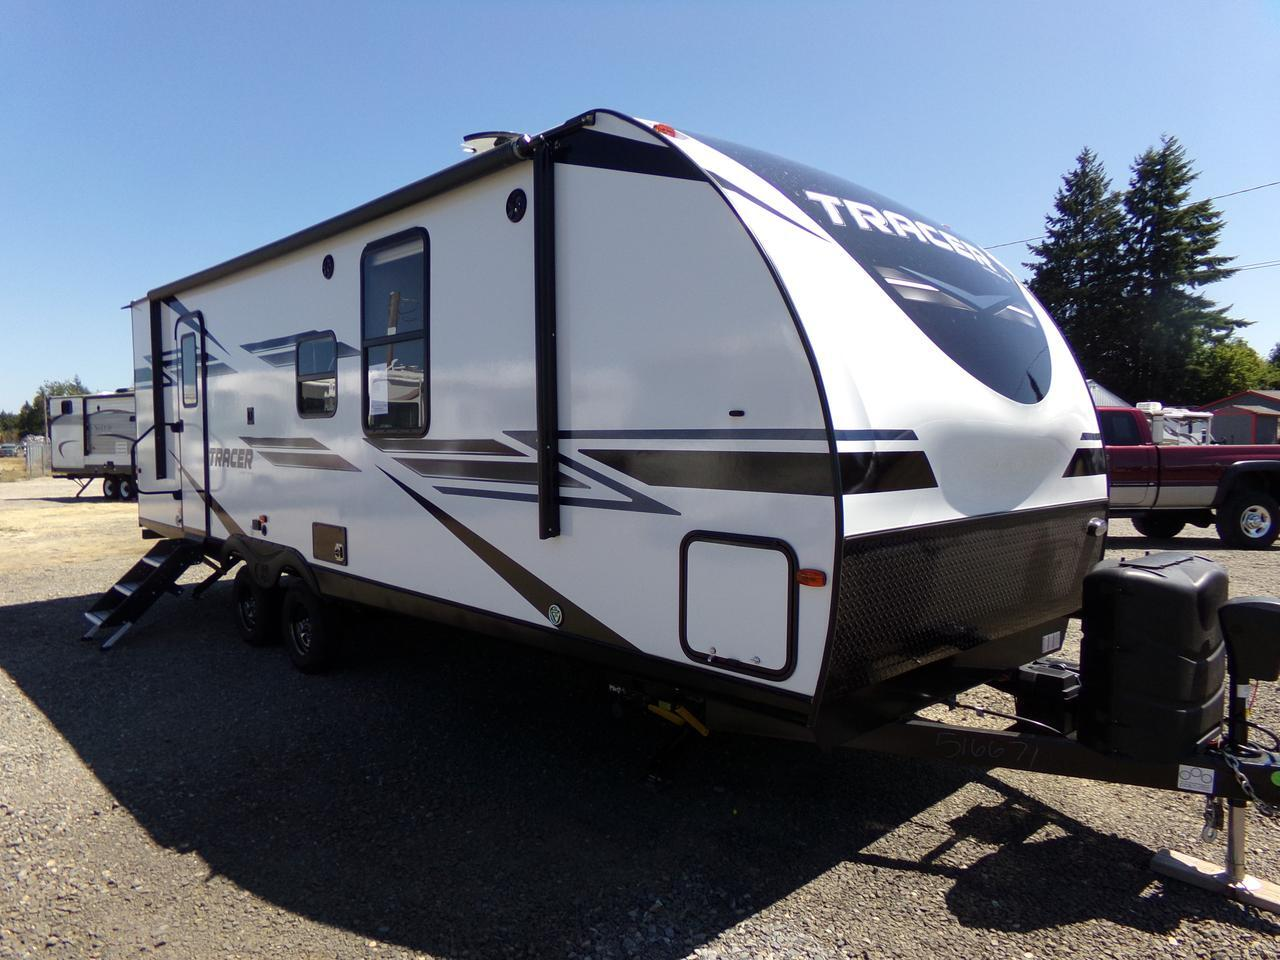 2020 PRIME TIME TRACER 260KS TRAVEL TRAILER Olympia WA